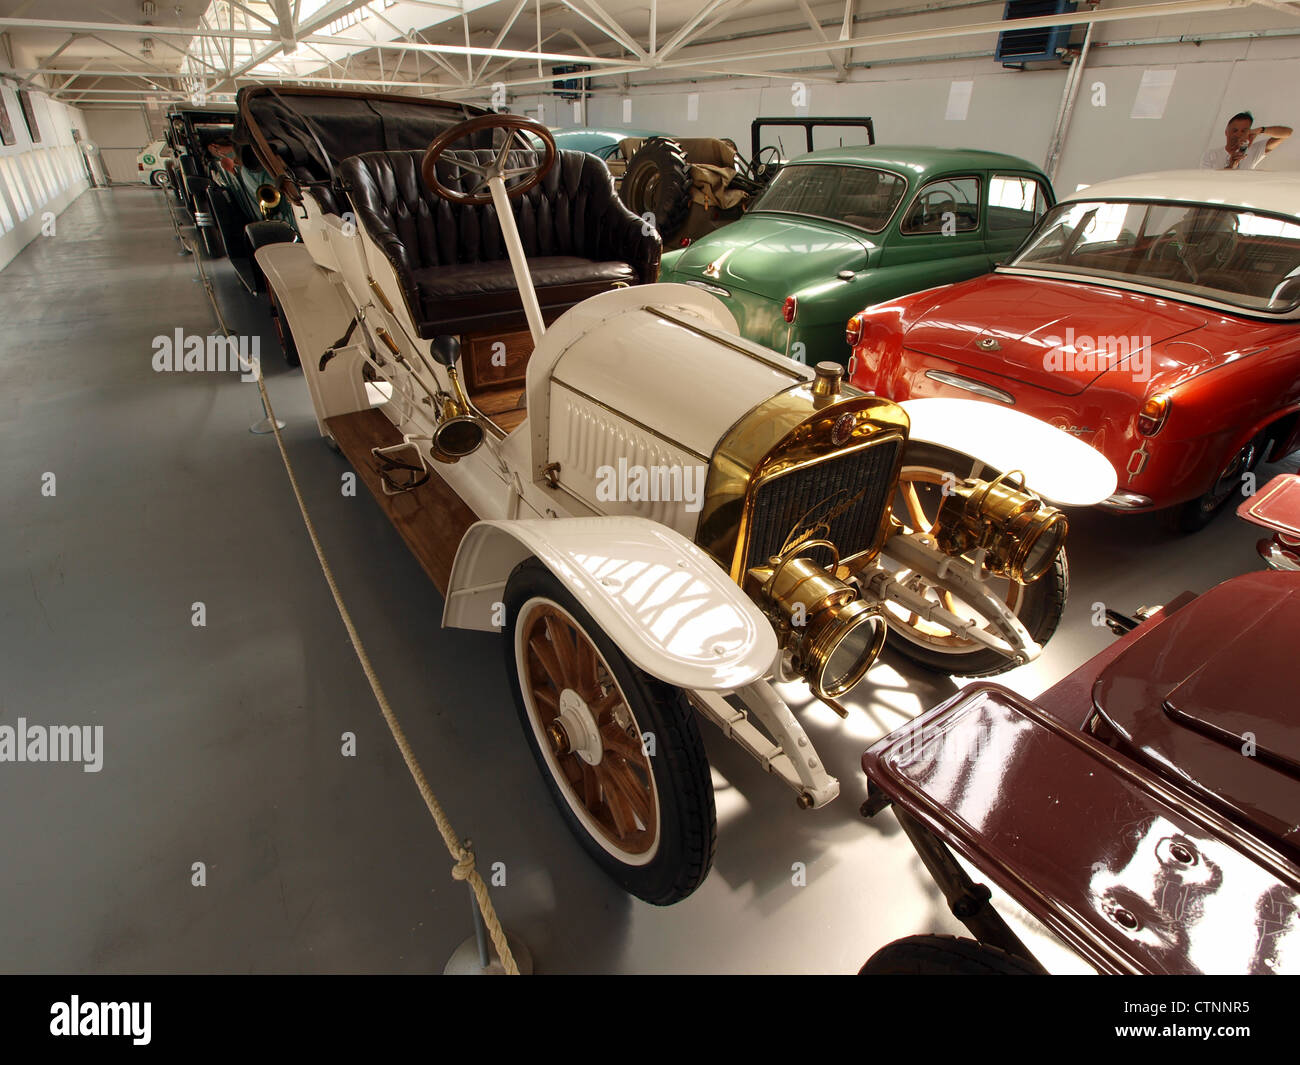 1909-1911 Laurin & Klement G - Stock Image